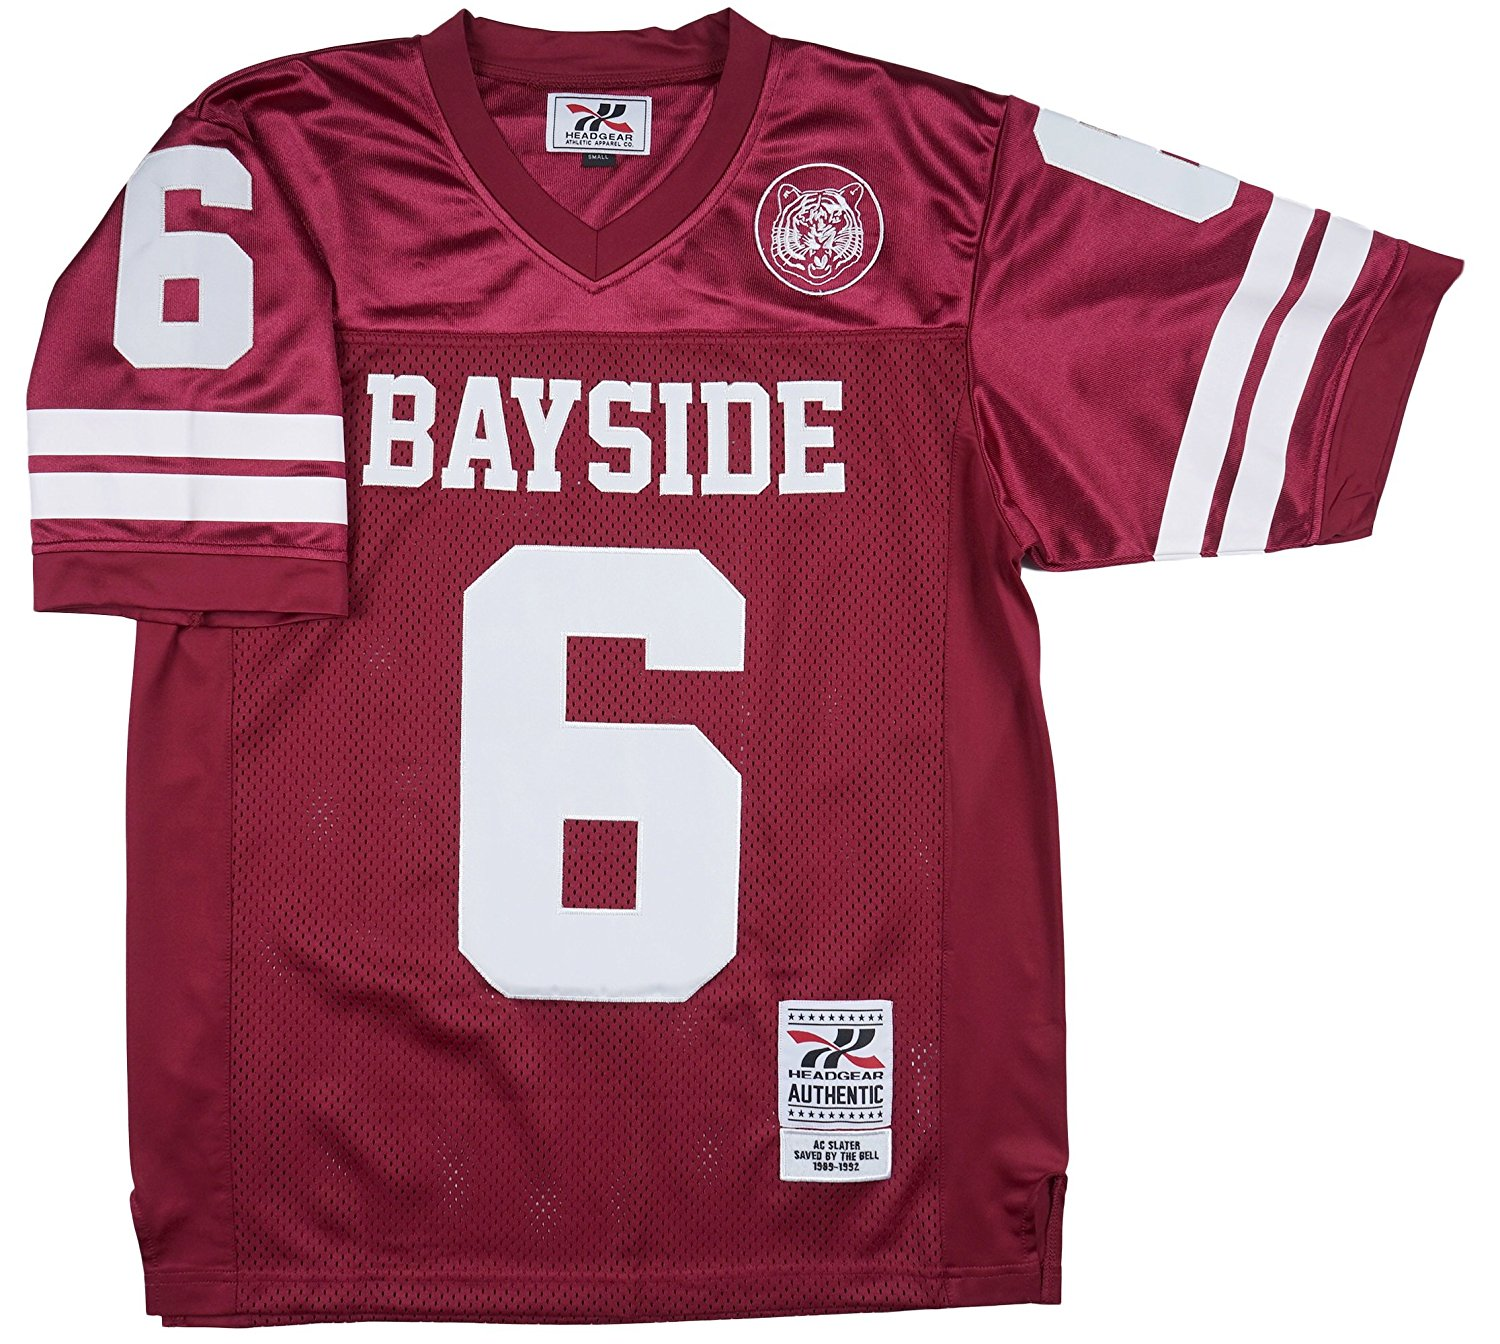 Buy Saved By The Bell AC Slater  6 Bayside Mens Football Jersey in ... 681644404491